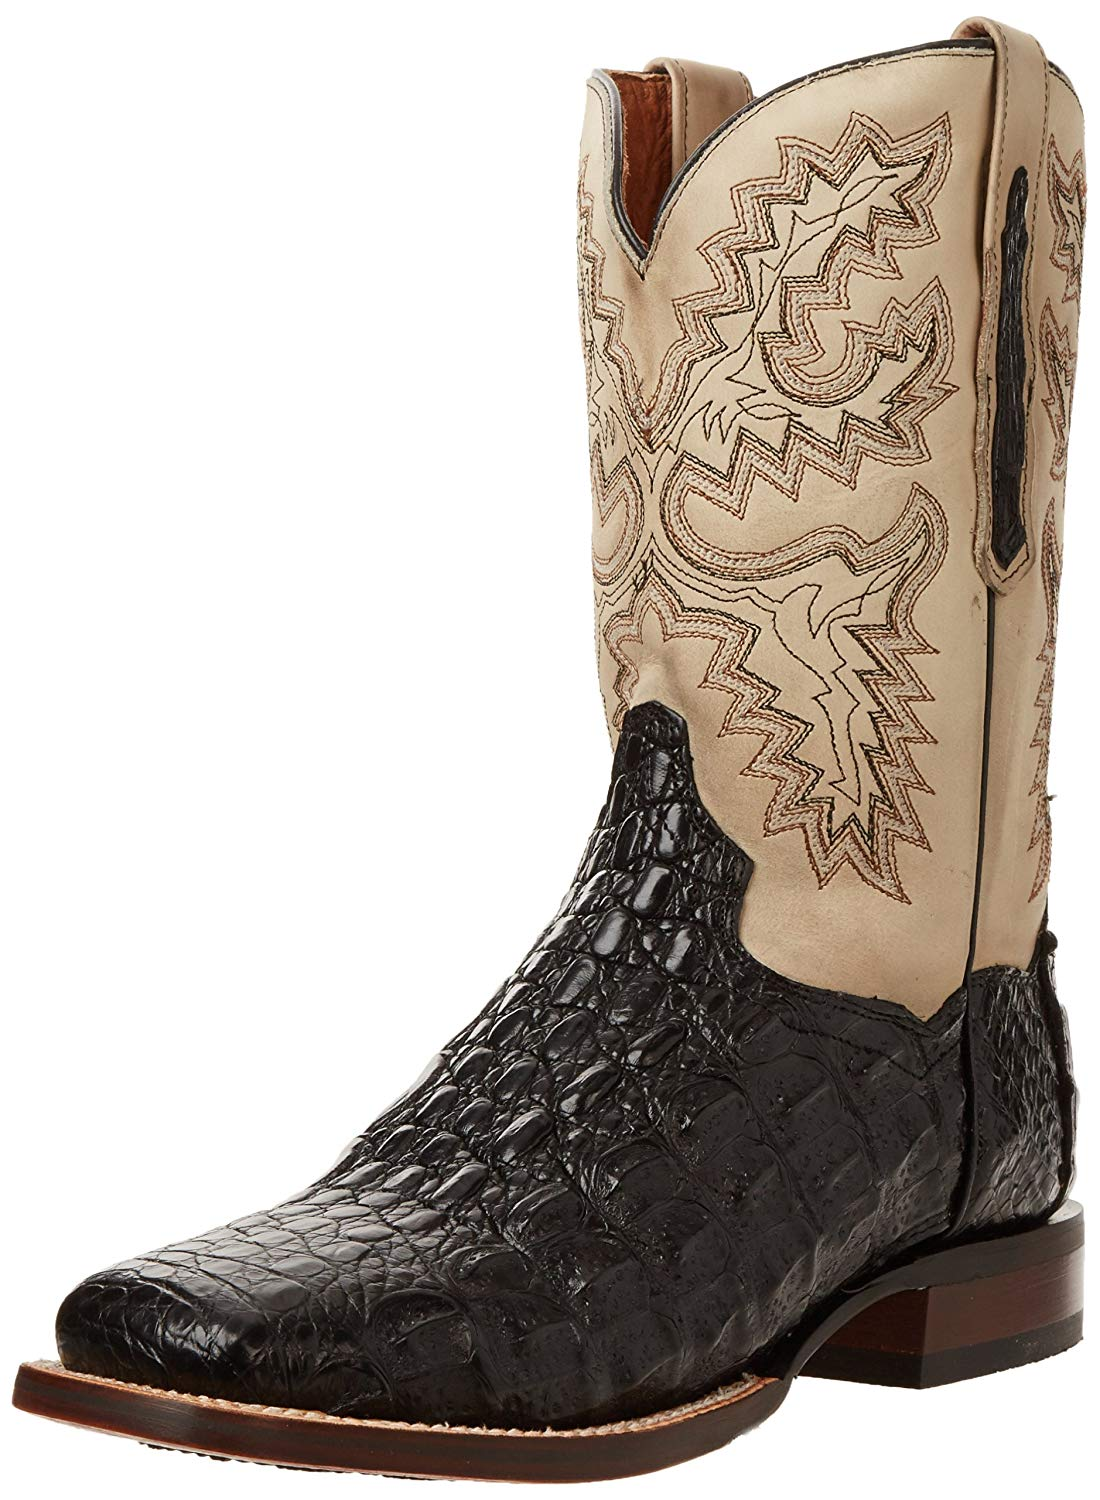 7852d171279 Cheap Dan Post Boot Co, find Dan Post Boot Co deals on line at ...